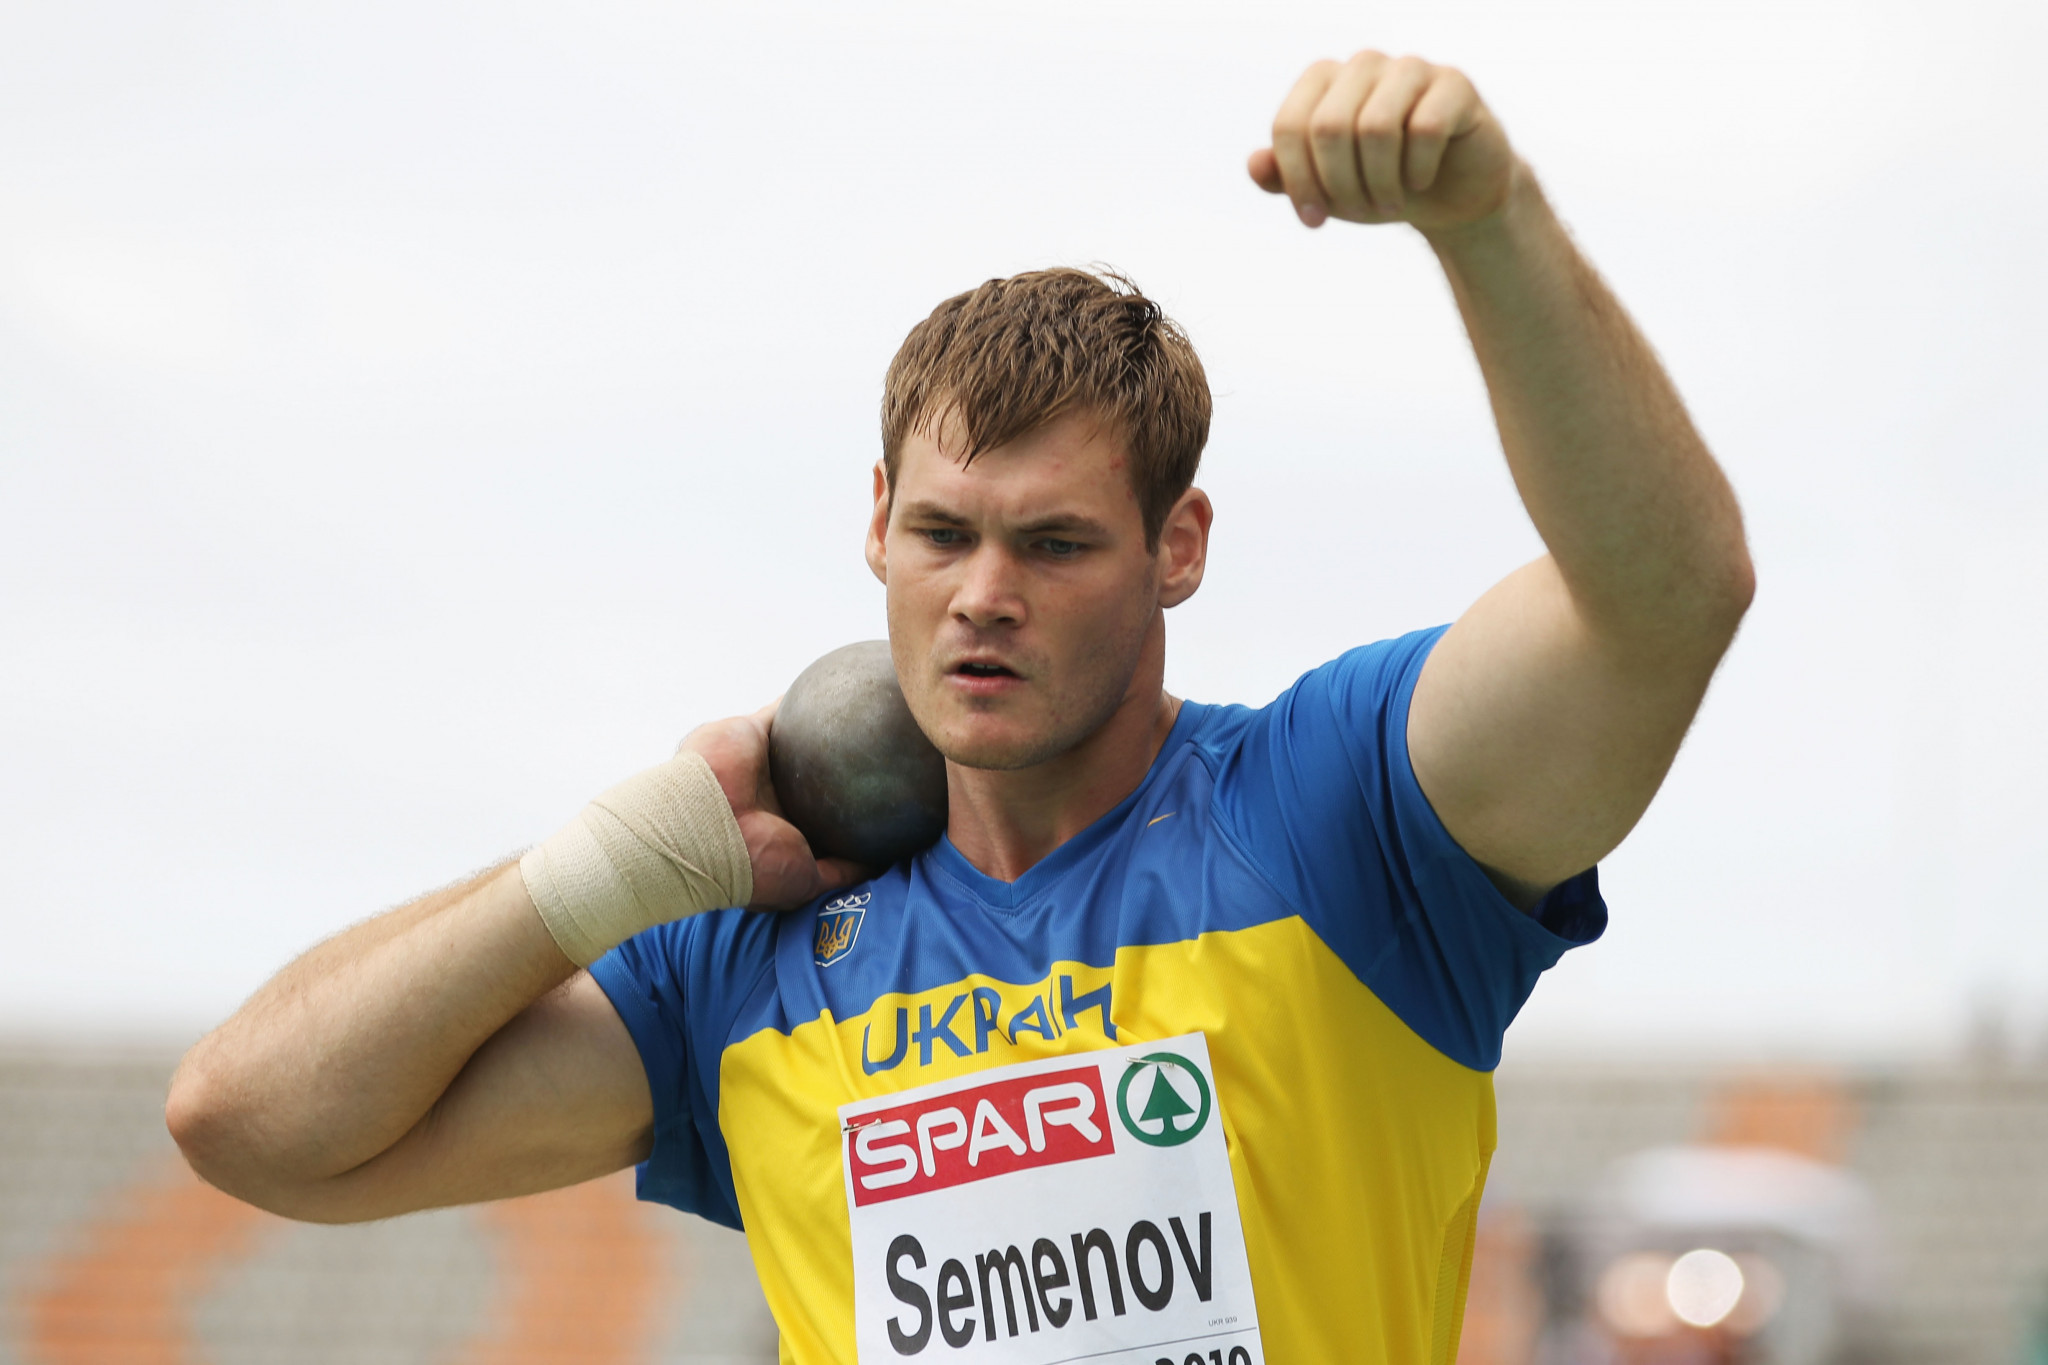 Ukraine shot putter Semenov suspended by Athletics Integrity Unit after failed test